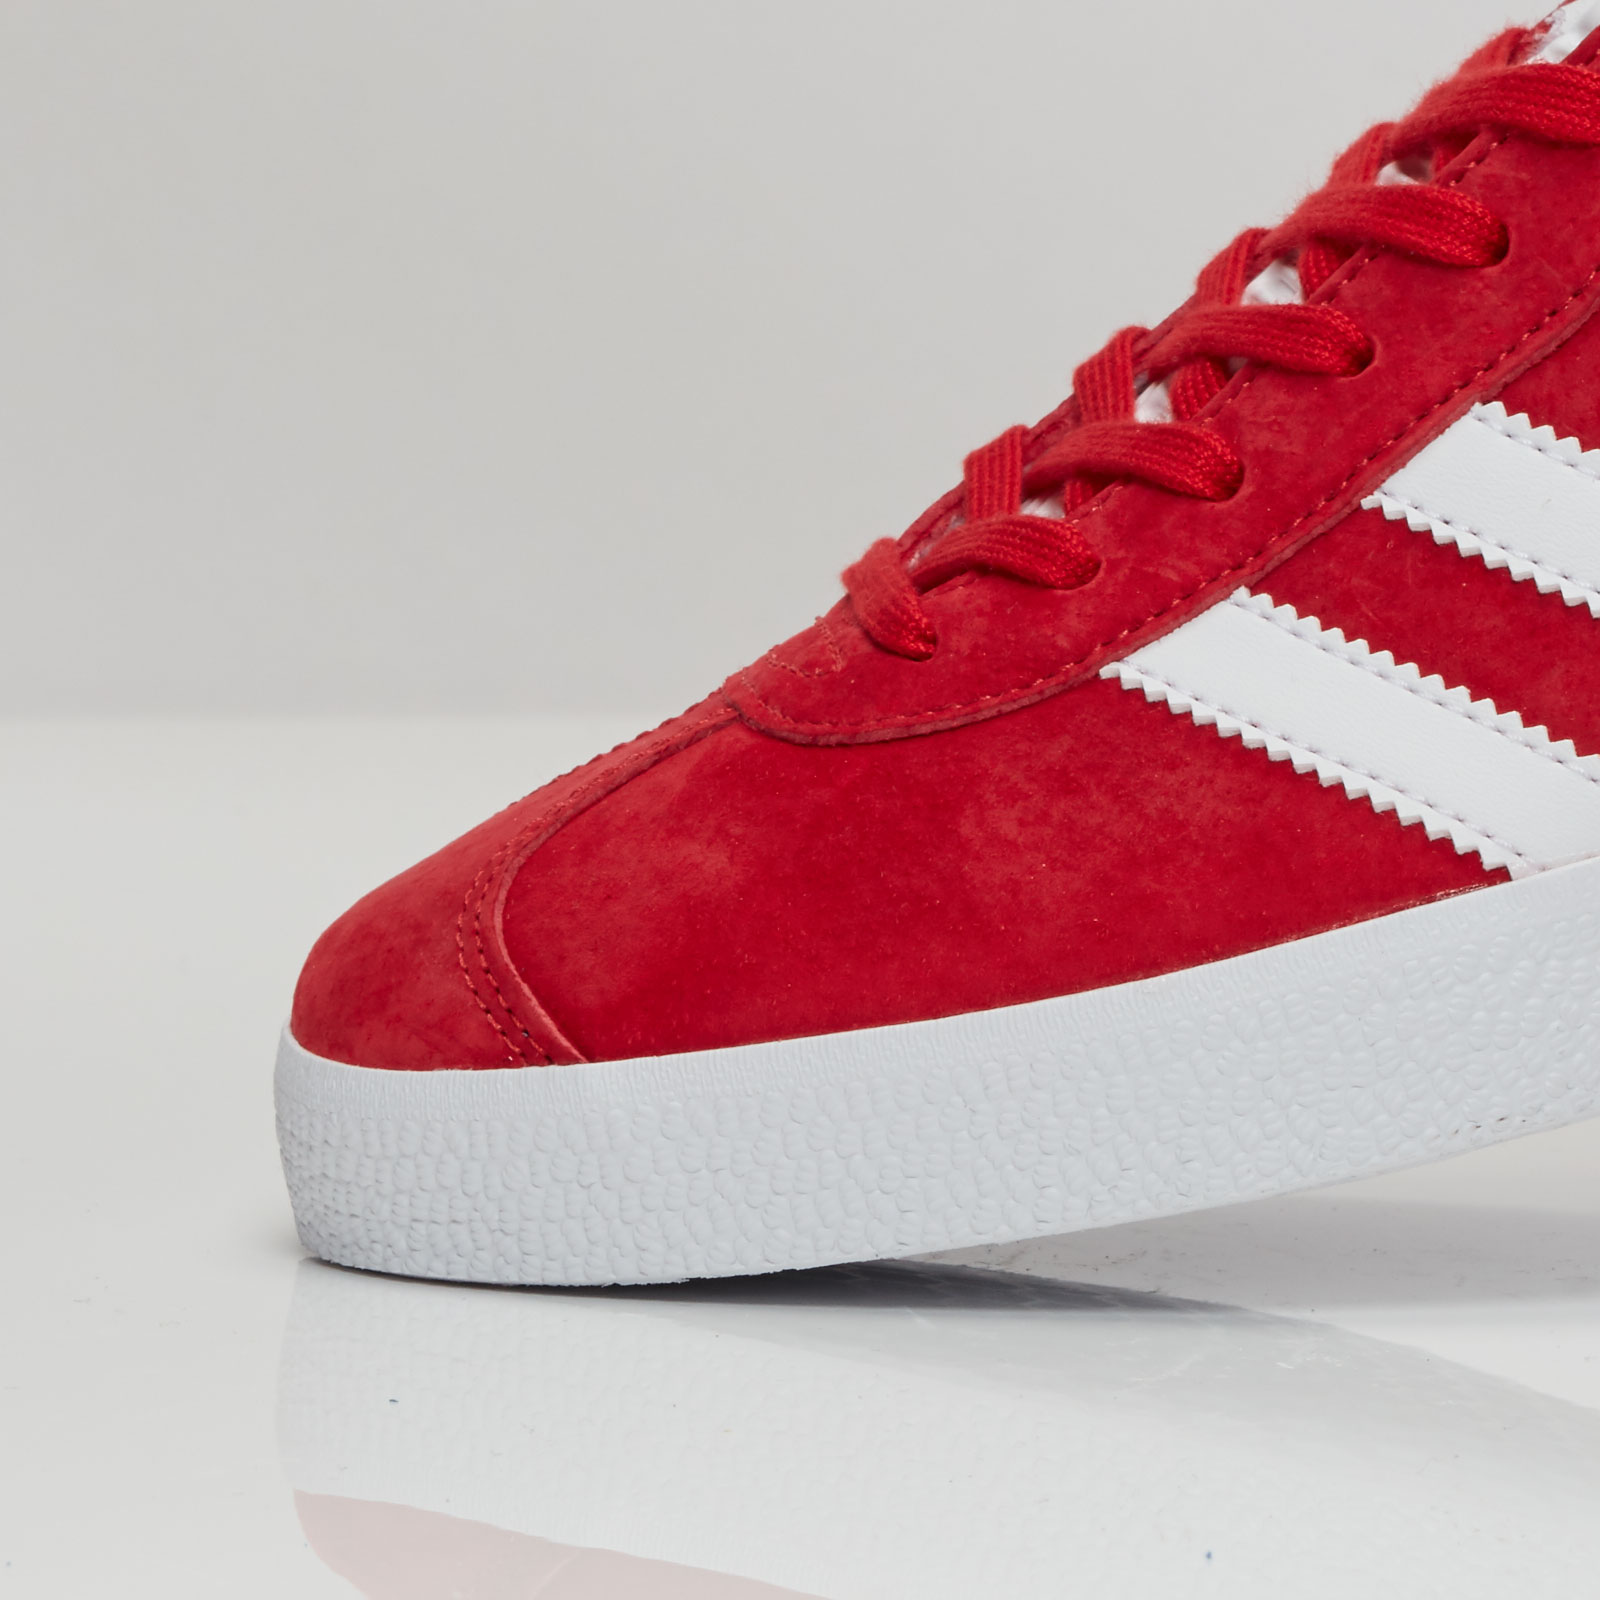 official photos 17657 f90d6 ... adidas Gazelle adidas Gazelle